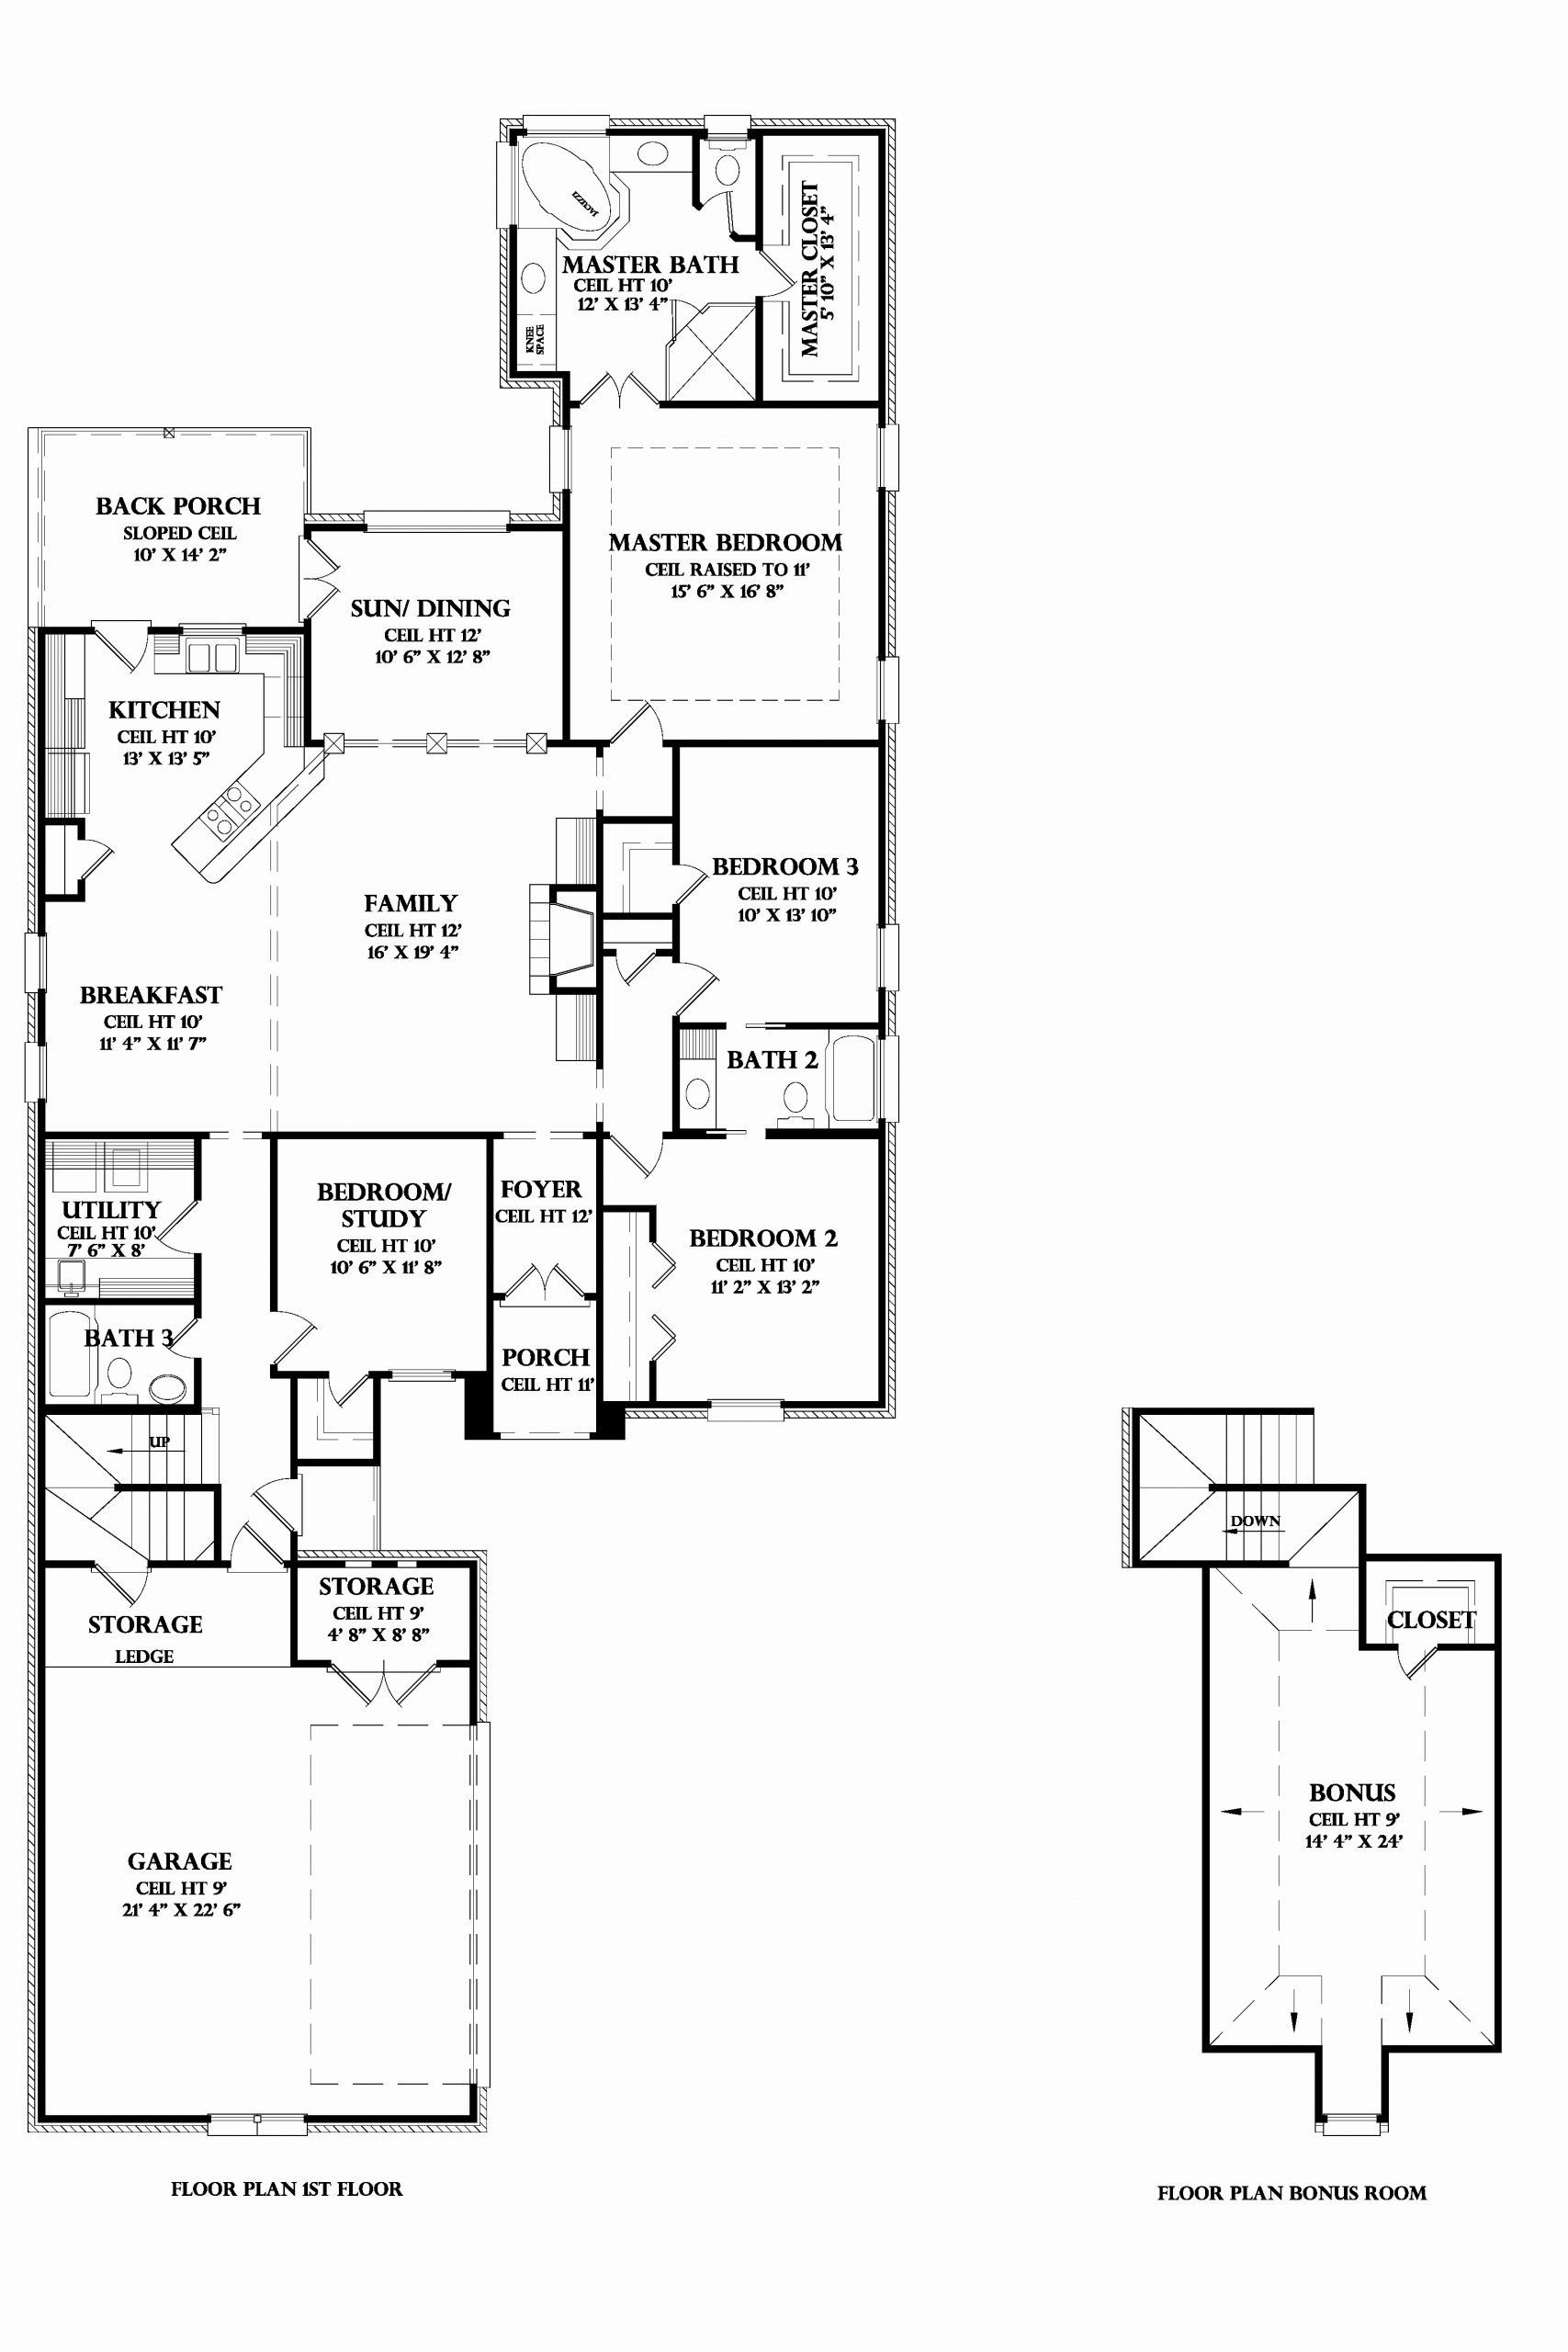 1800 Sf House Plans Inspirational 2500 3000 Sq Ft Acadiana Home Design In 2020 Square House Plans Square Floor Plans Floor Plans Ranch